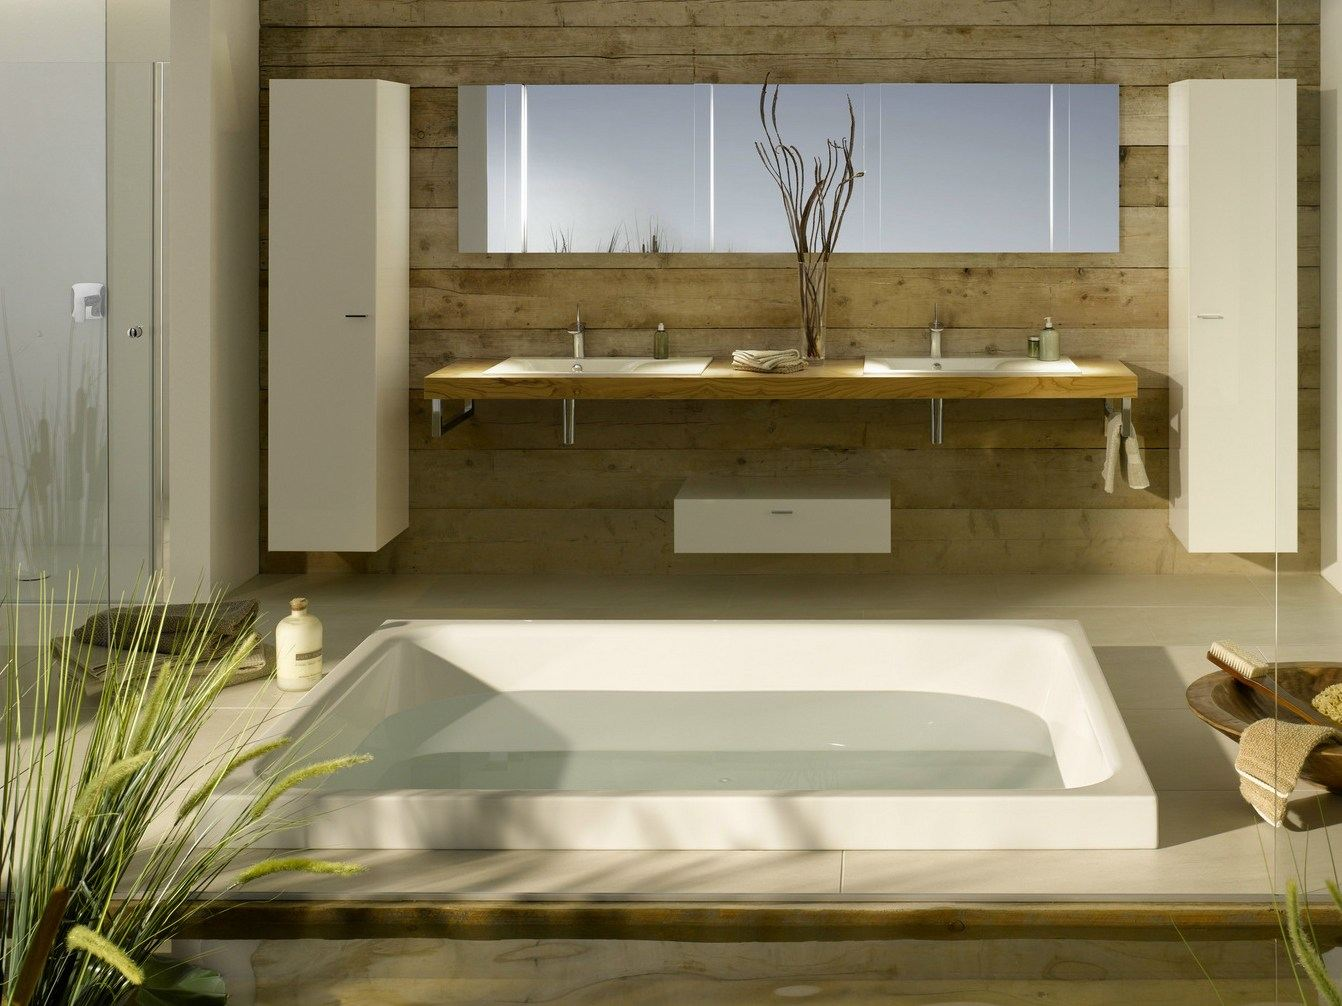 Bette Select Badewannen Bettespa 2 Seater Bathtub By Bette Design Schmiddem Design